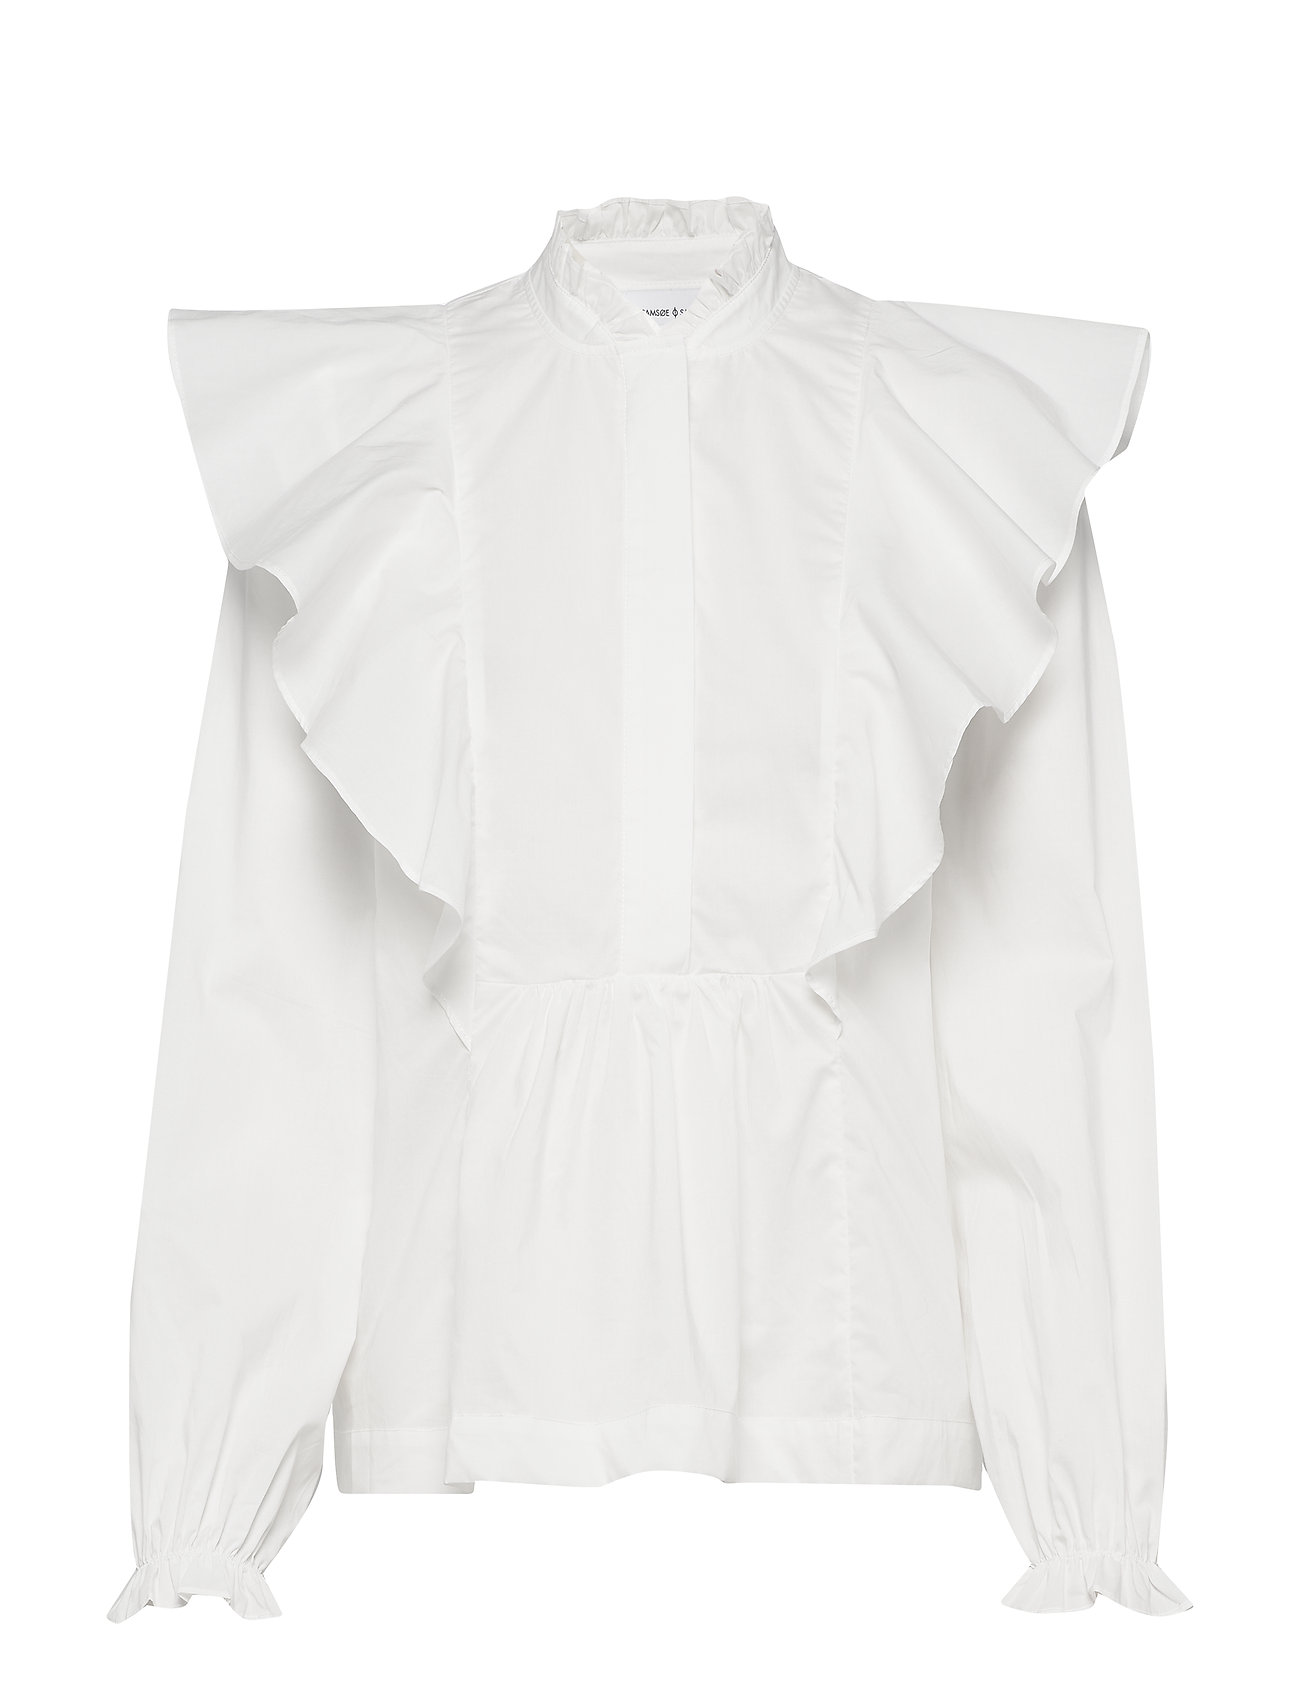 Samsøe & Samsøe Martha shirt 10451 - CLEAR CREAM